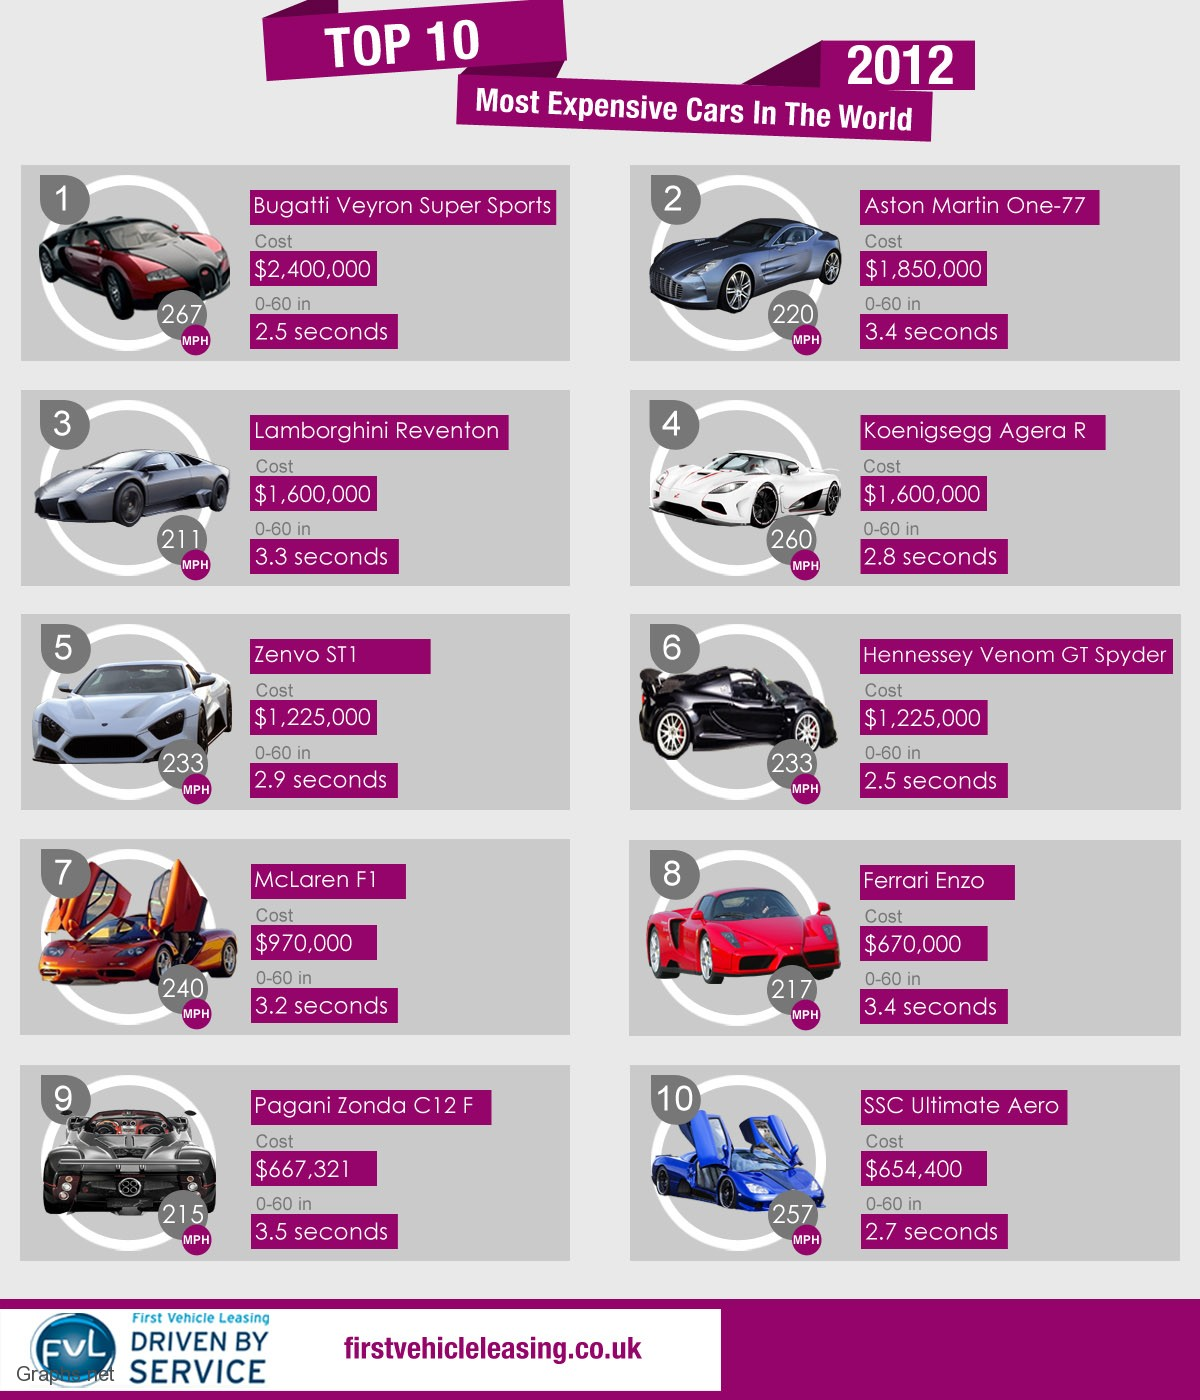 10 Popular and Expensive Cars Of The Year 2012